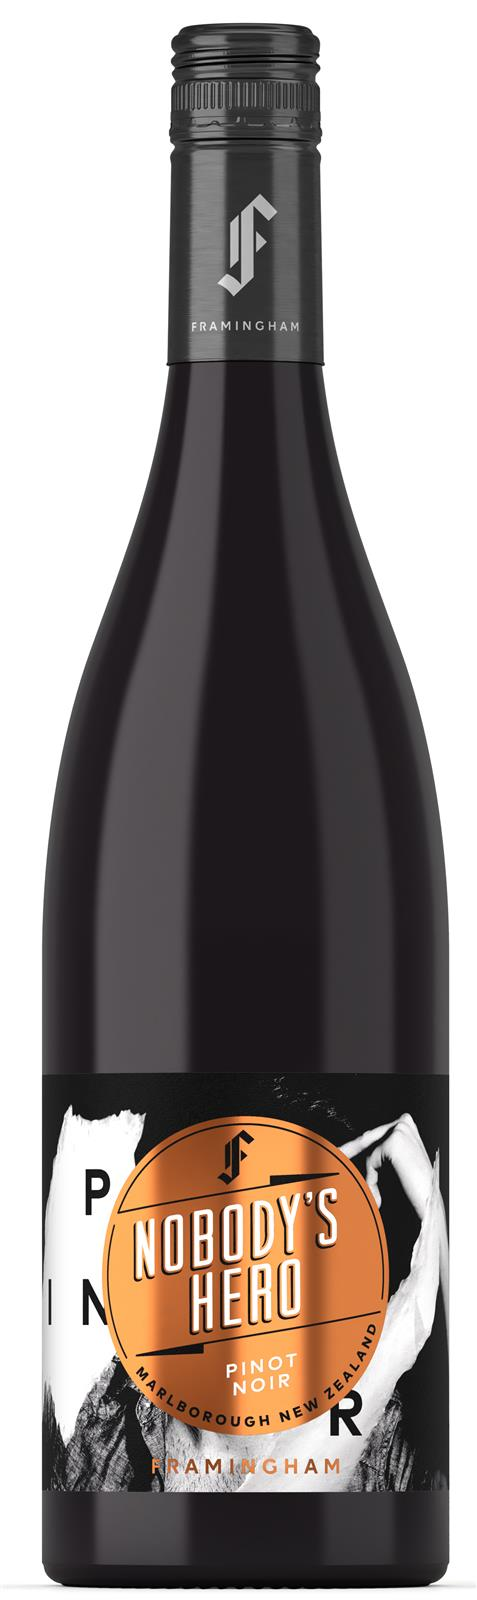 Framingham's 'Nobody's Hero' Limited Edition Marlborough Pinot Noir 2019